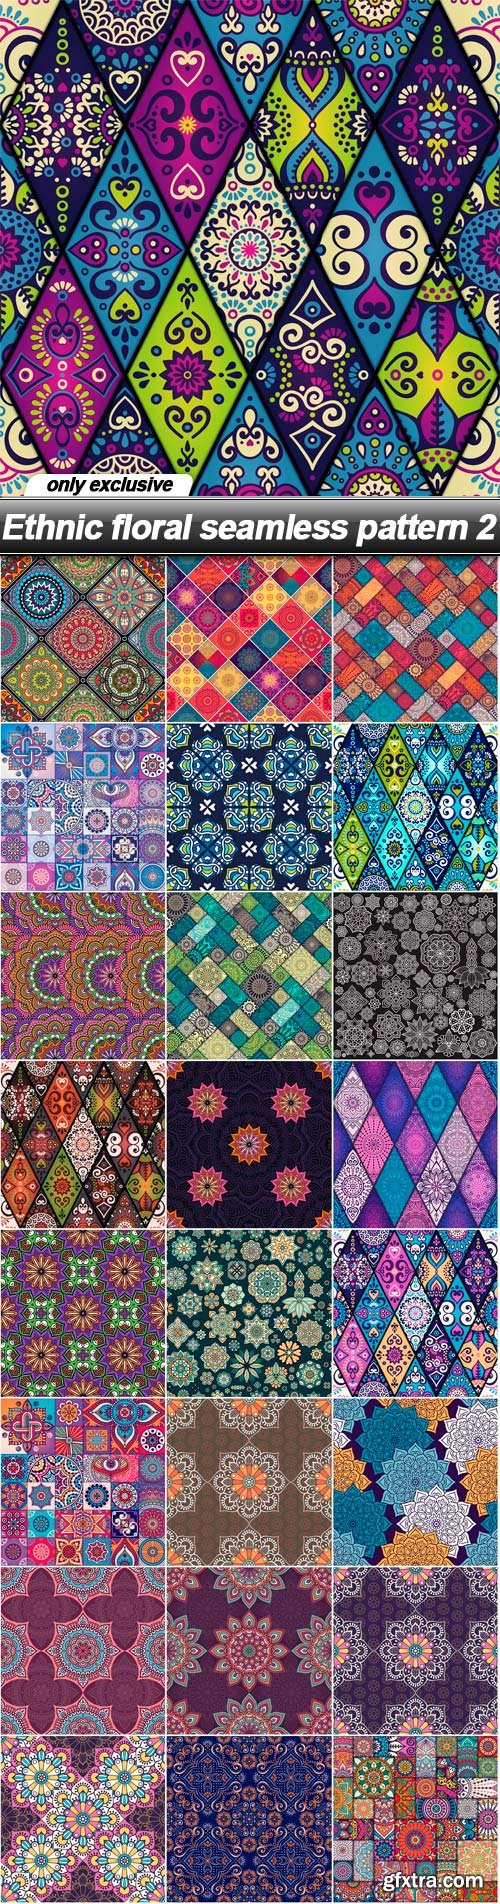 Ethnic floral seamless pattern 2 - 25 EPS